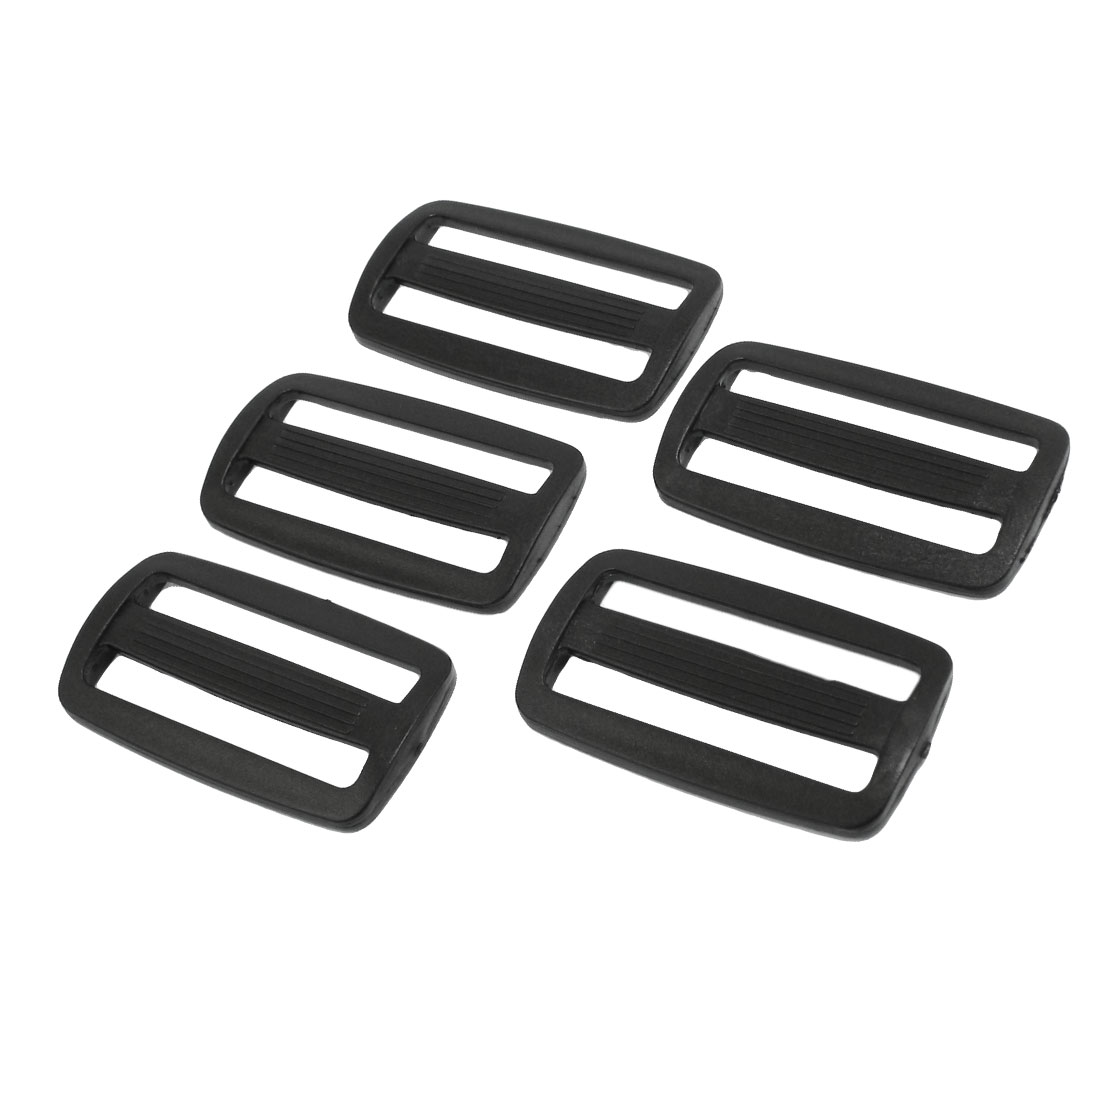 "Luggage Bag Repair Parts Plastic 2"" Side Rectangle Buckle 5 Pcs"